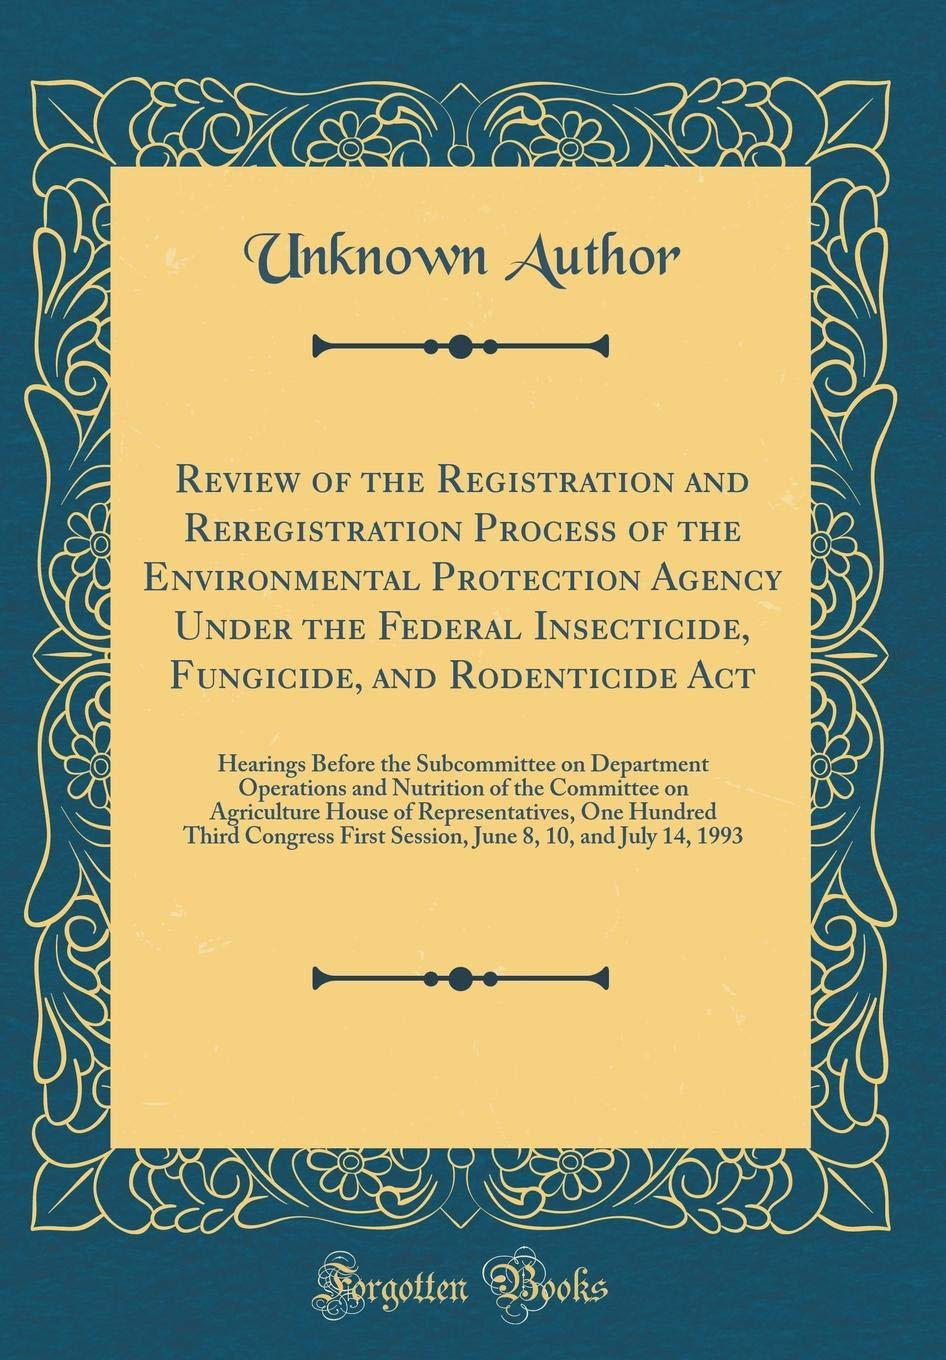 Download Review of the Registration and Reregistration Process of the Environmental Protection Agency Under the Federal Insecticide, Fungicide, and Rodenticide ... and Nutrition of the Committee on Agricul PDF